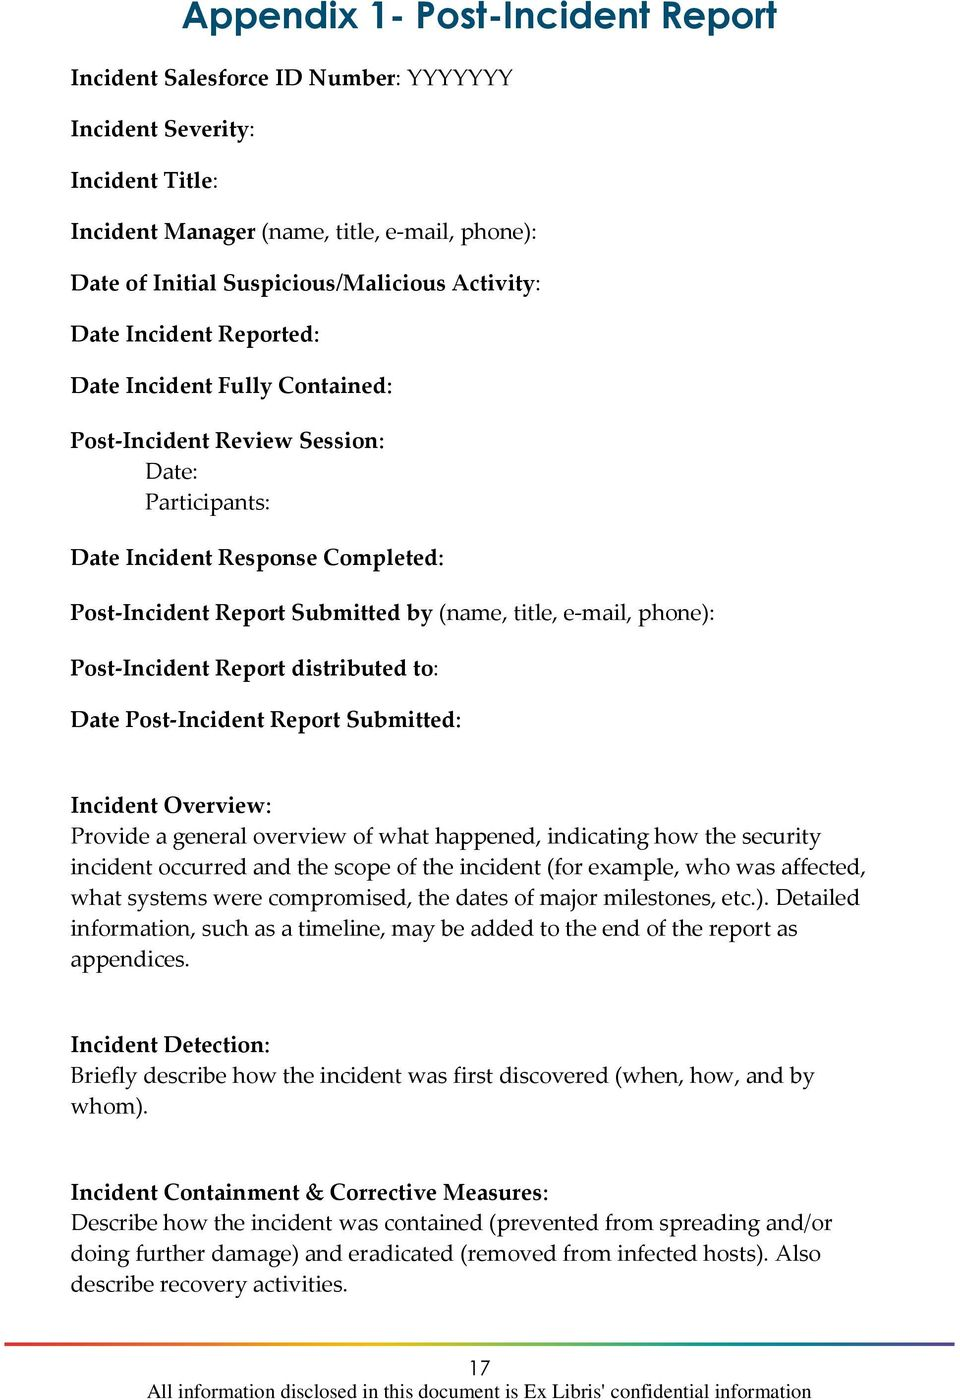 e-mail, phone): Post-Incident Report distributed to: Date Post-Incident Report Submitted: Incident Overview: Provide a general overview of what happened, indicating how the security incident occurred